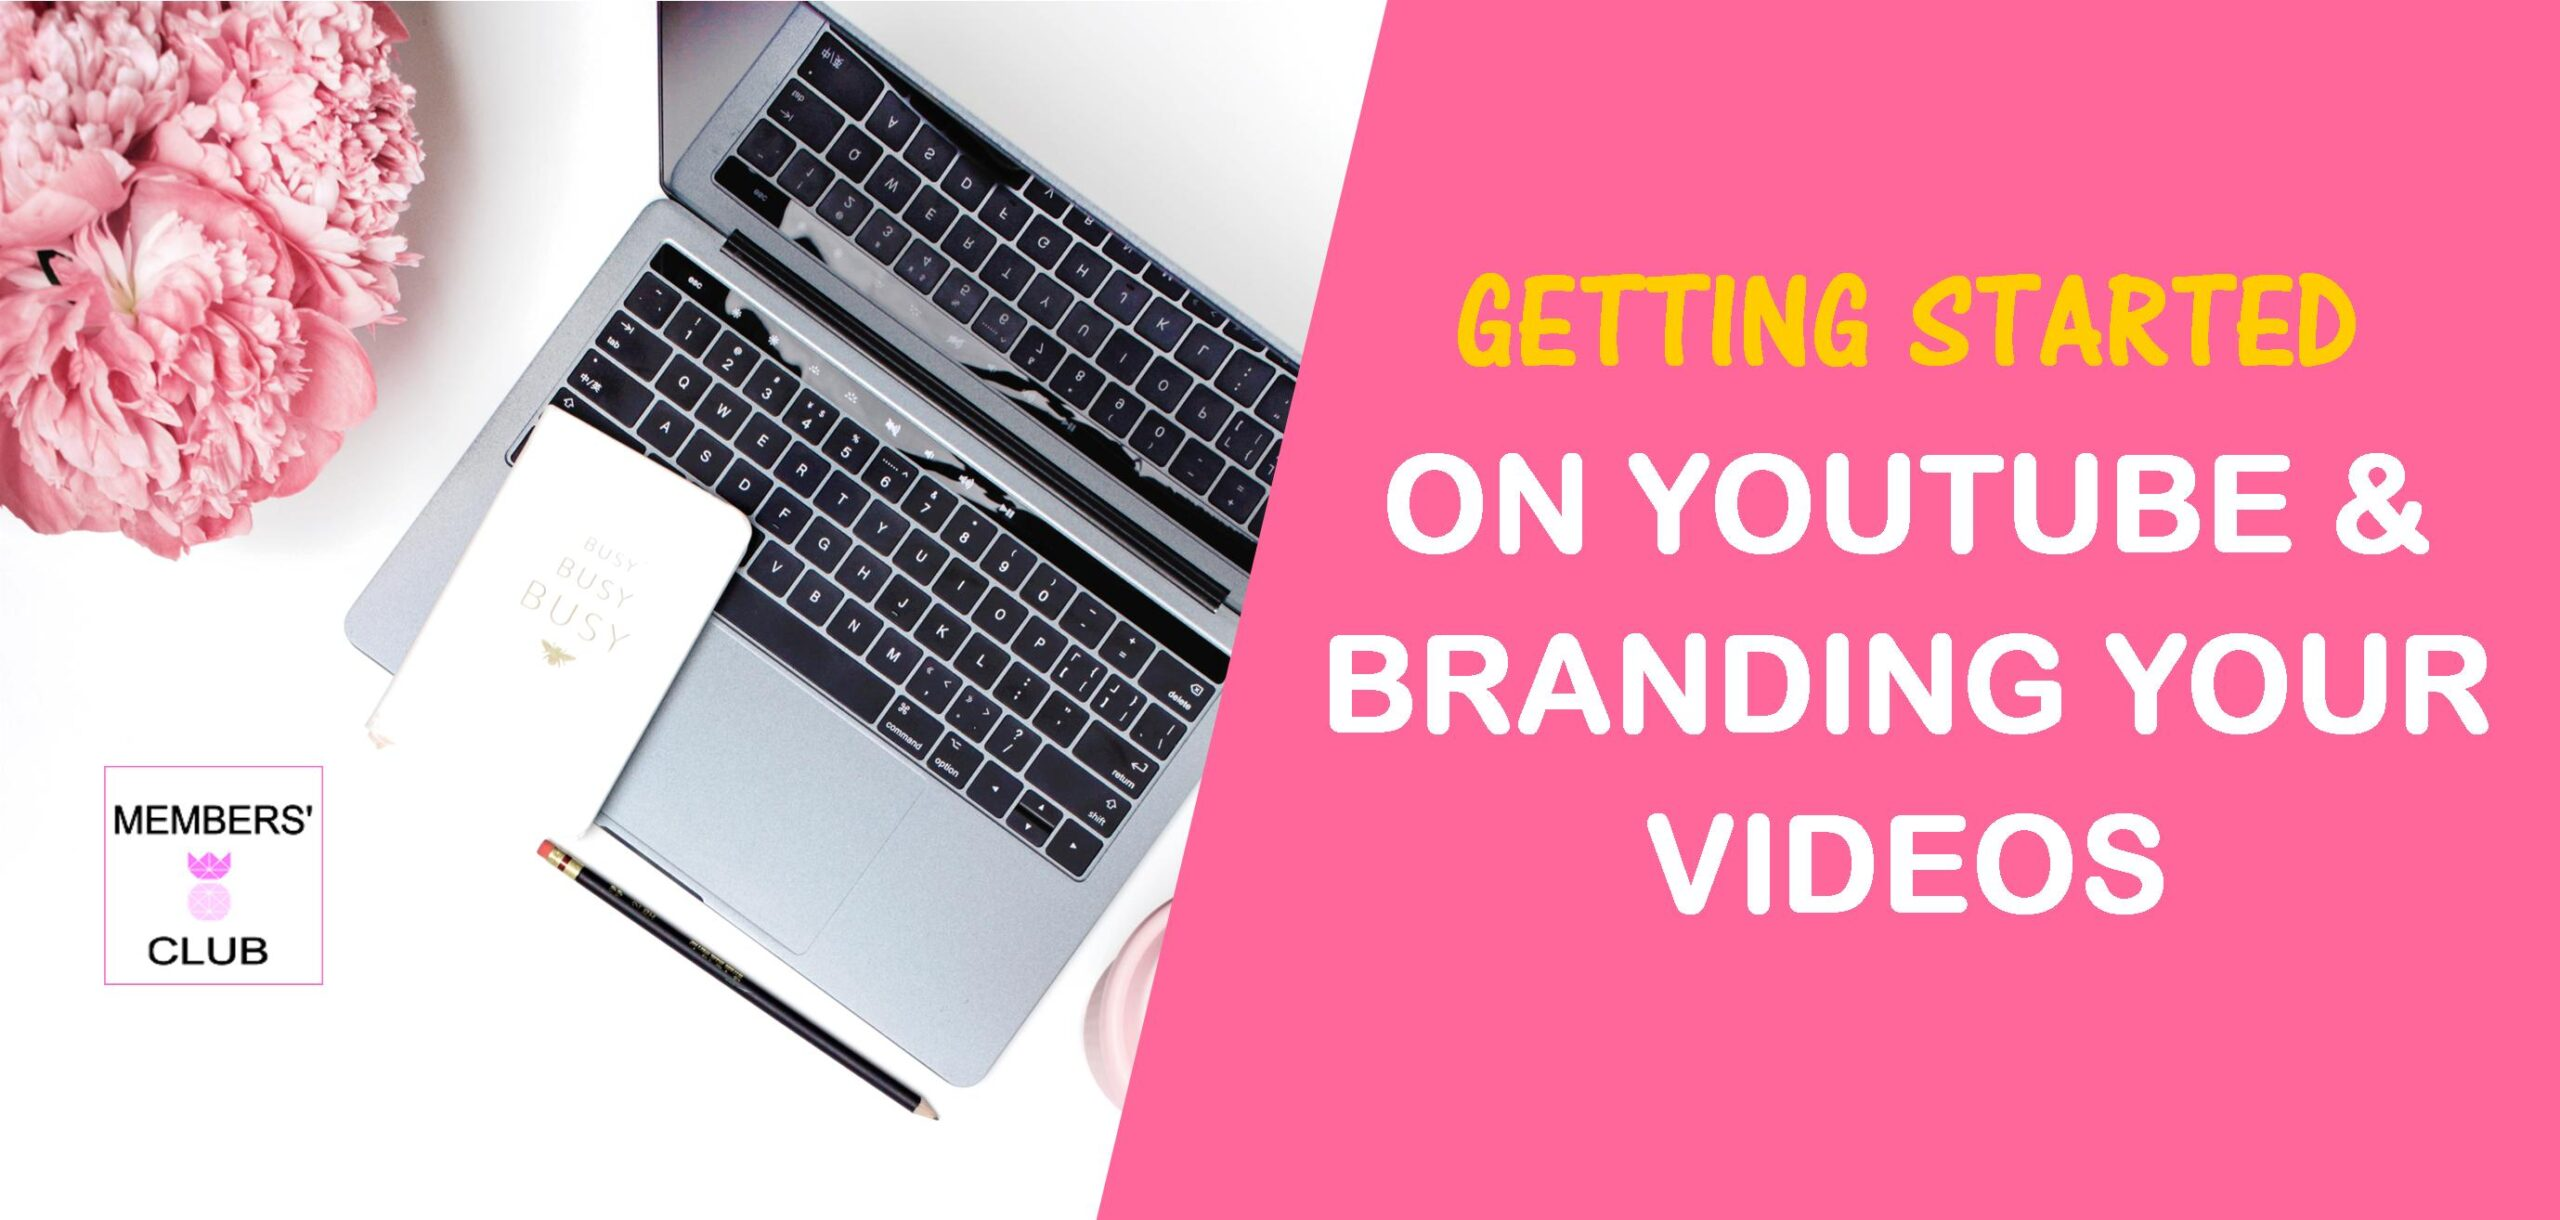 Getting Started On YouTube & Branding Your Videos